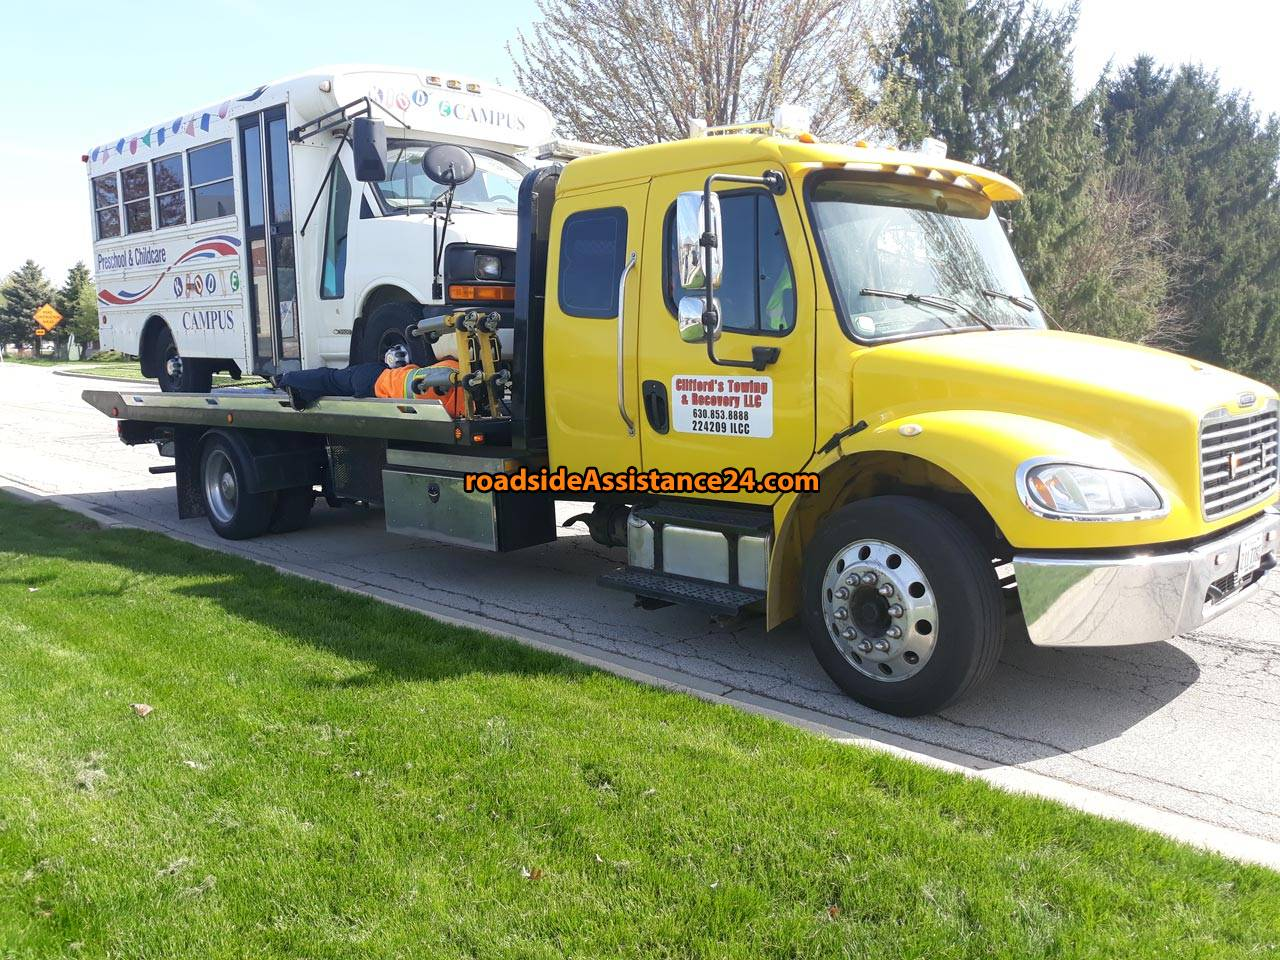 Clifford's Towing & Recovery LLC